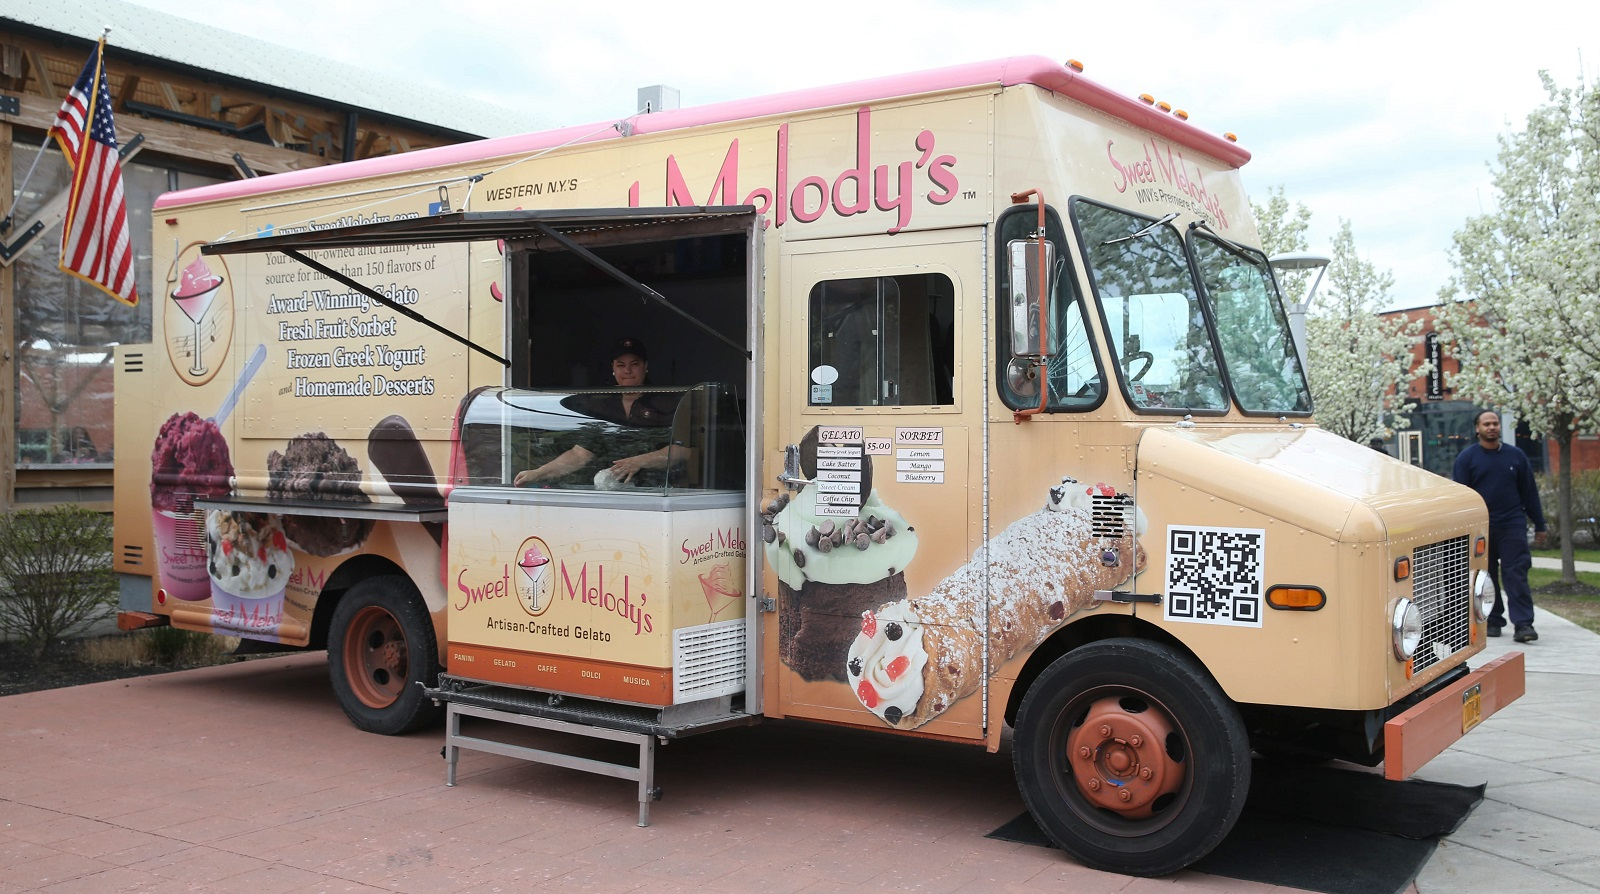 Sweet Melody's now operates two food trucks focused on gelato. (Sharon Cantillon/Buffalo News)